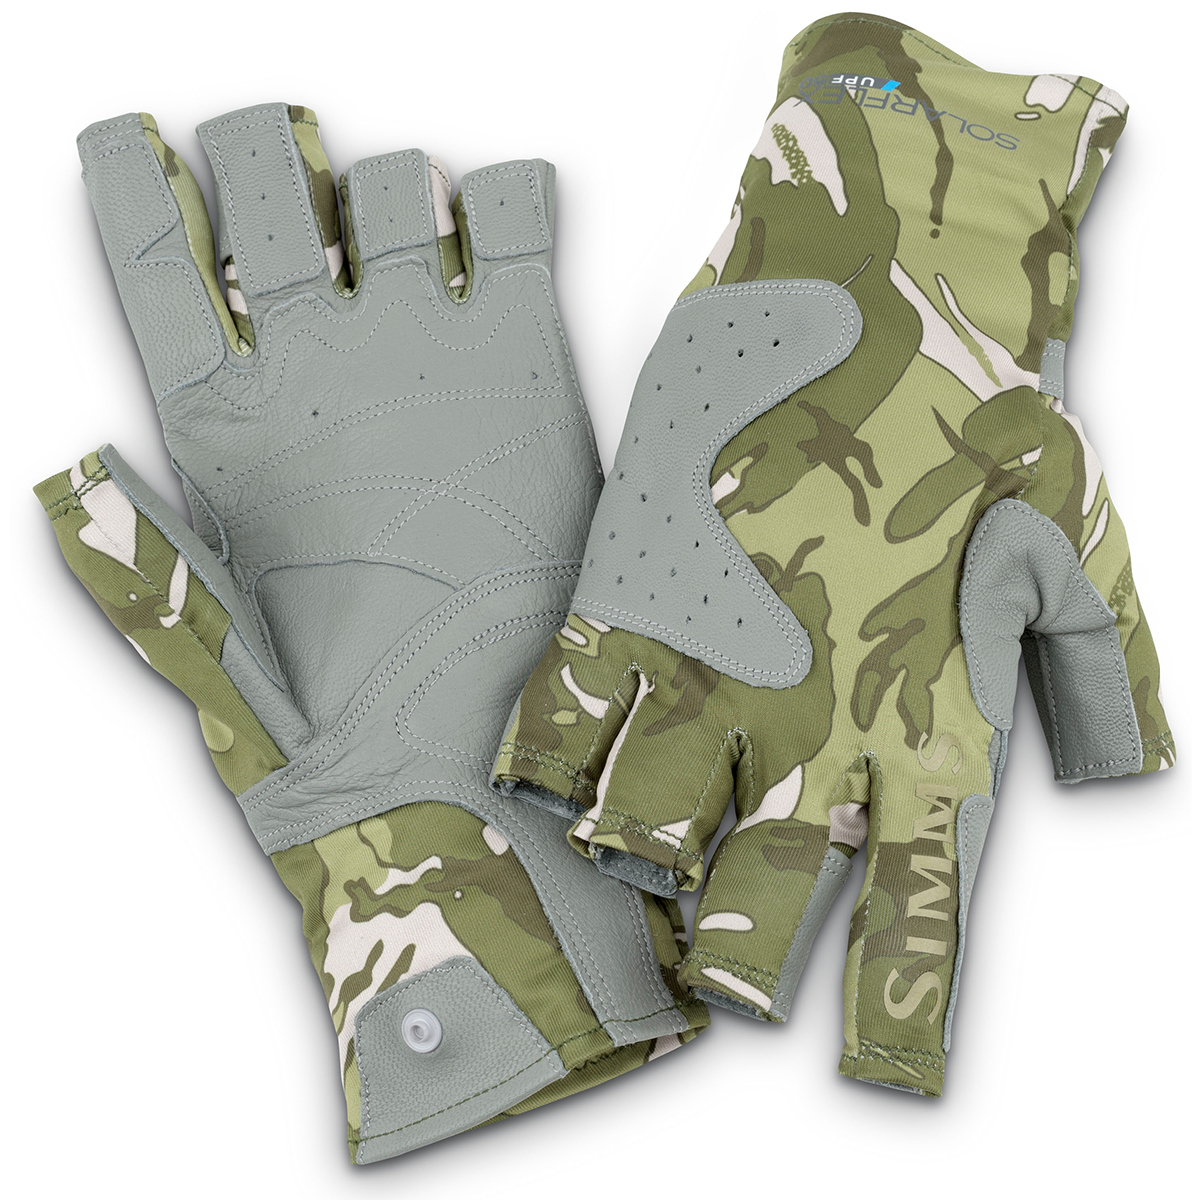 Simms solarflex guide glove riffle camo fly fishing socks for Fly fishing gloves